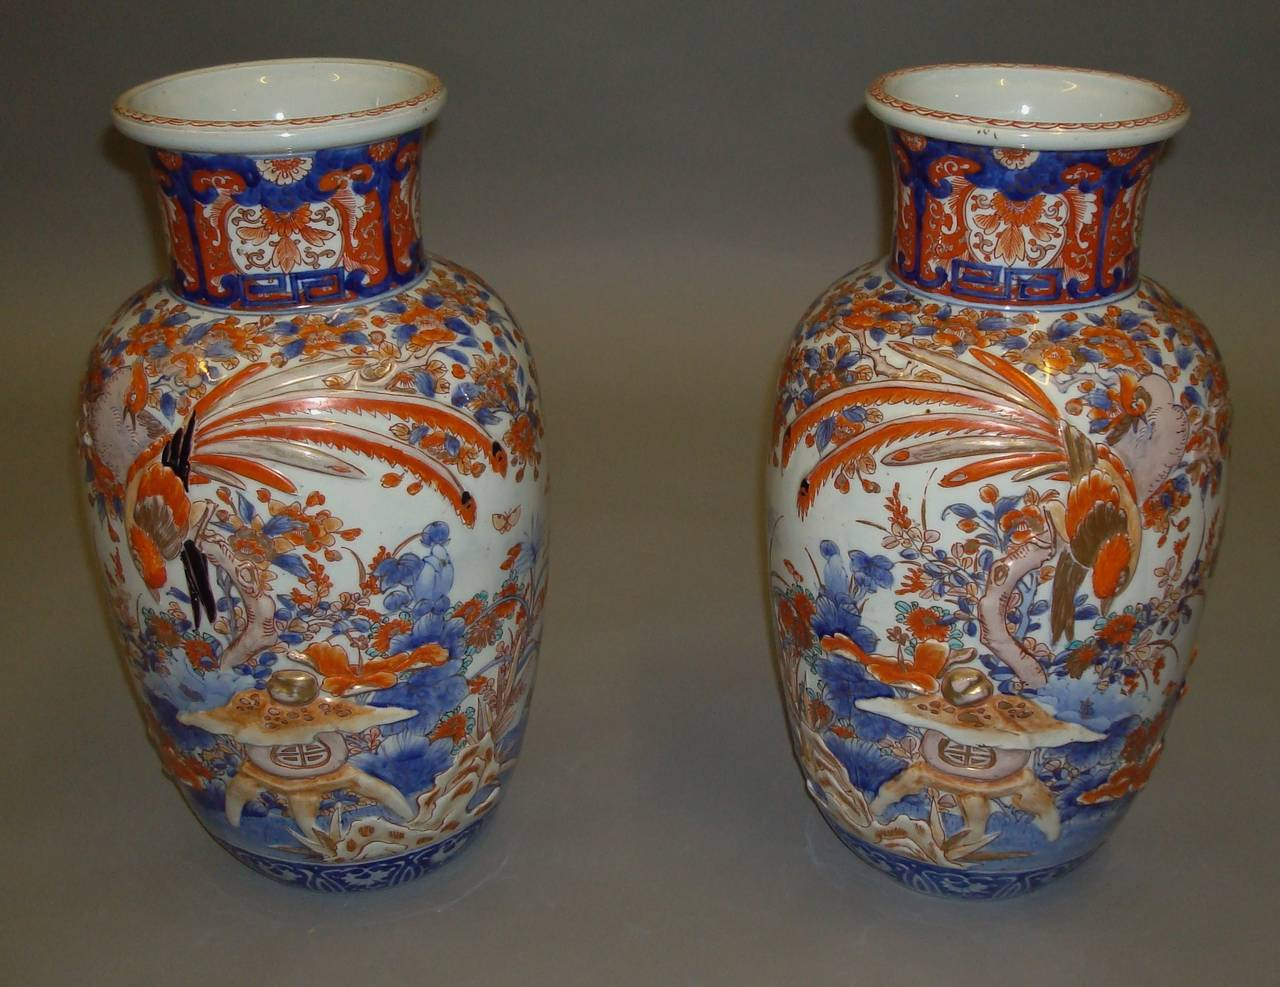 Large 19th century pair of imari vases at 1stdibs a large 19th century pair of imari vases of baluster form with slightly flared necks reviewsmspy